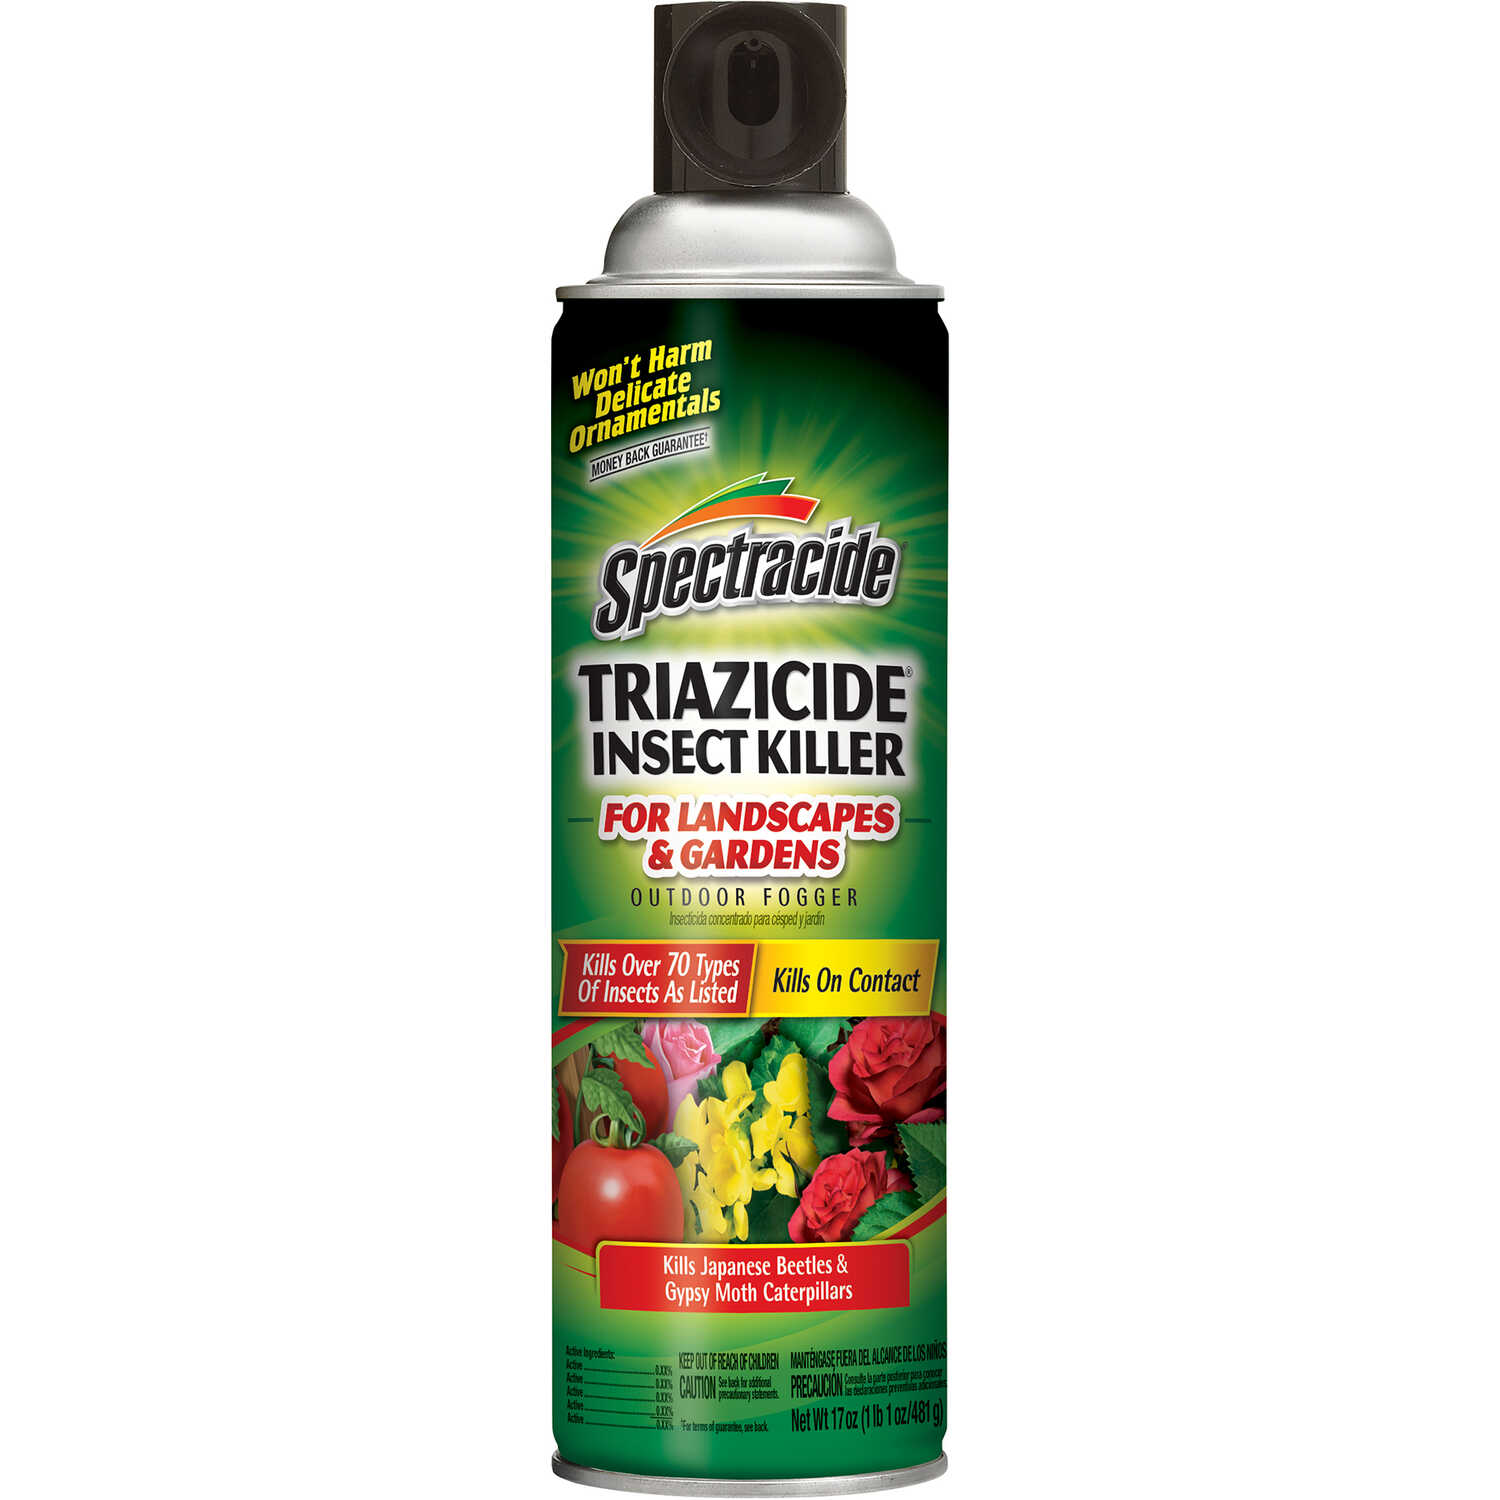 Spectracide  Triazicide for Landscapes & Gardens  Insect Killer for Lawns  16 oz.